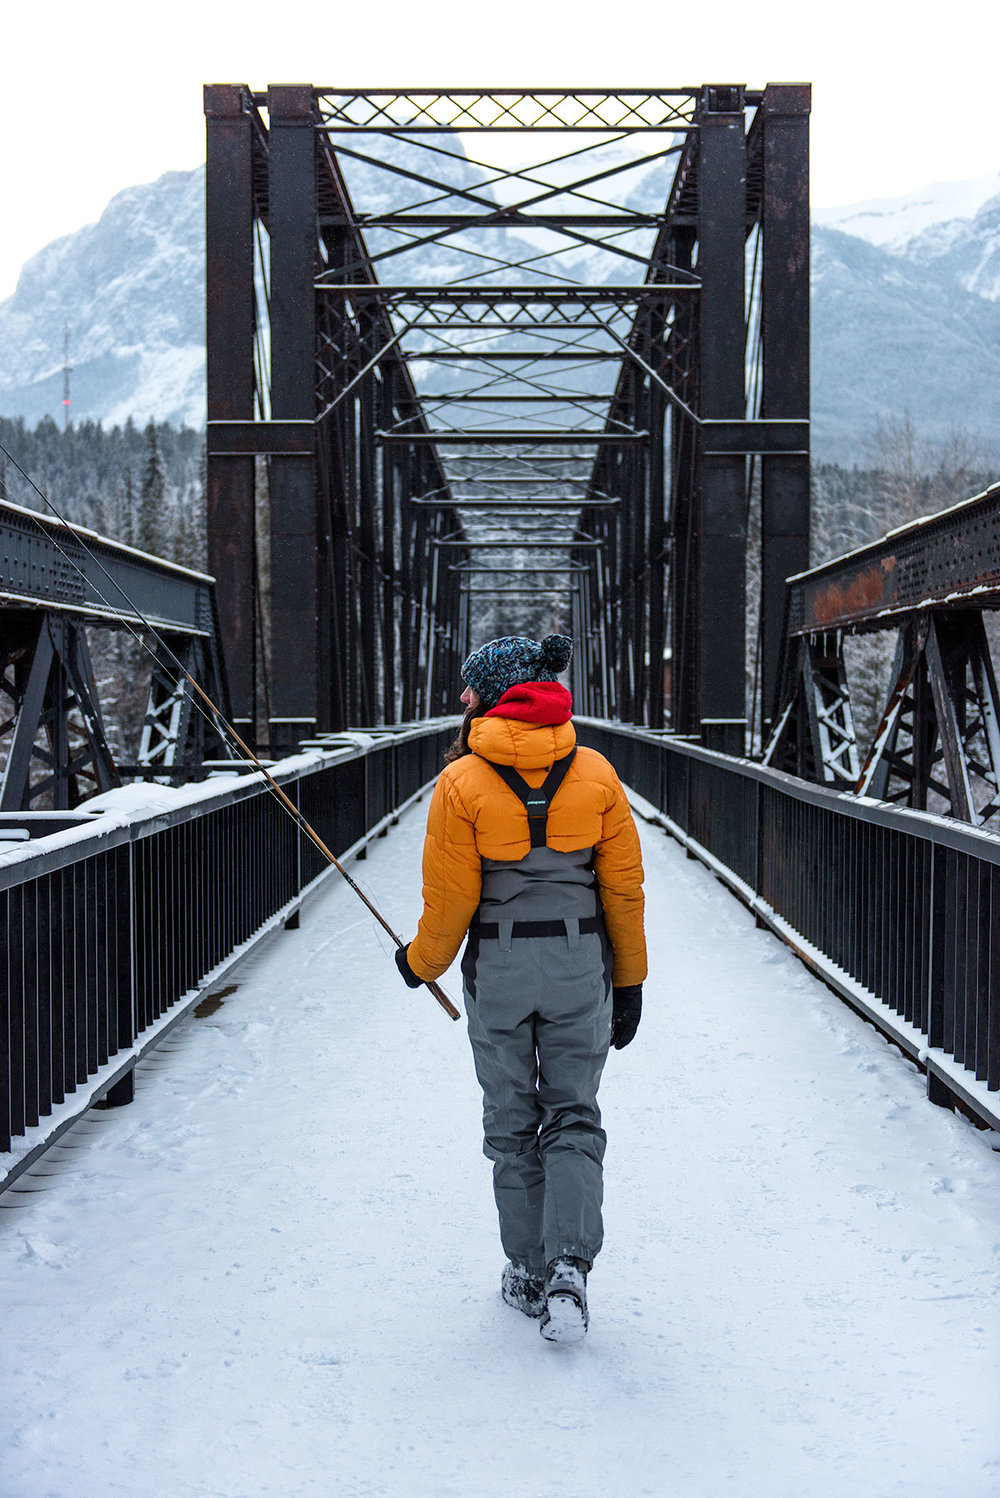 austin-trigg-patagonia-banff-alberta-winter-canmore-bow-river-bridge-mountains-canada-snow-lifestyle.jpg